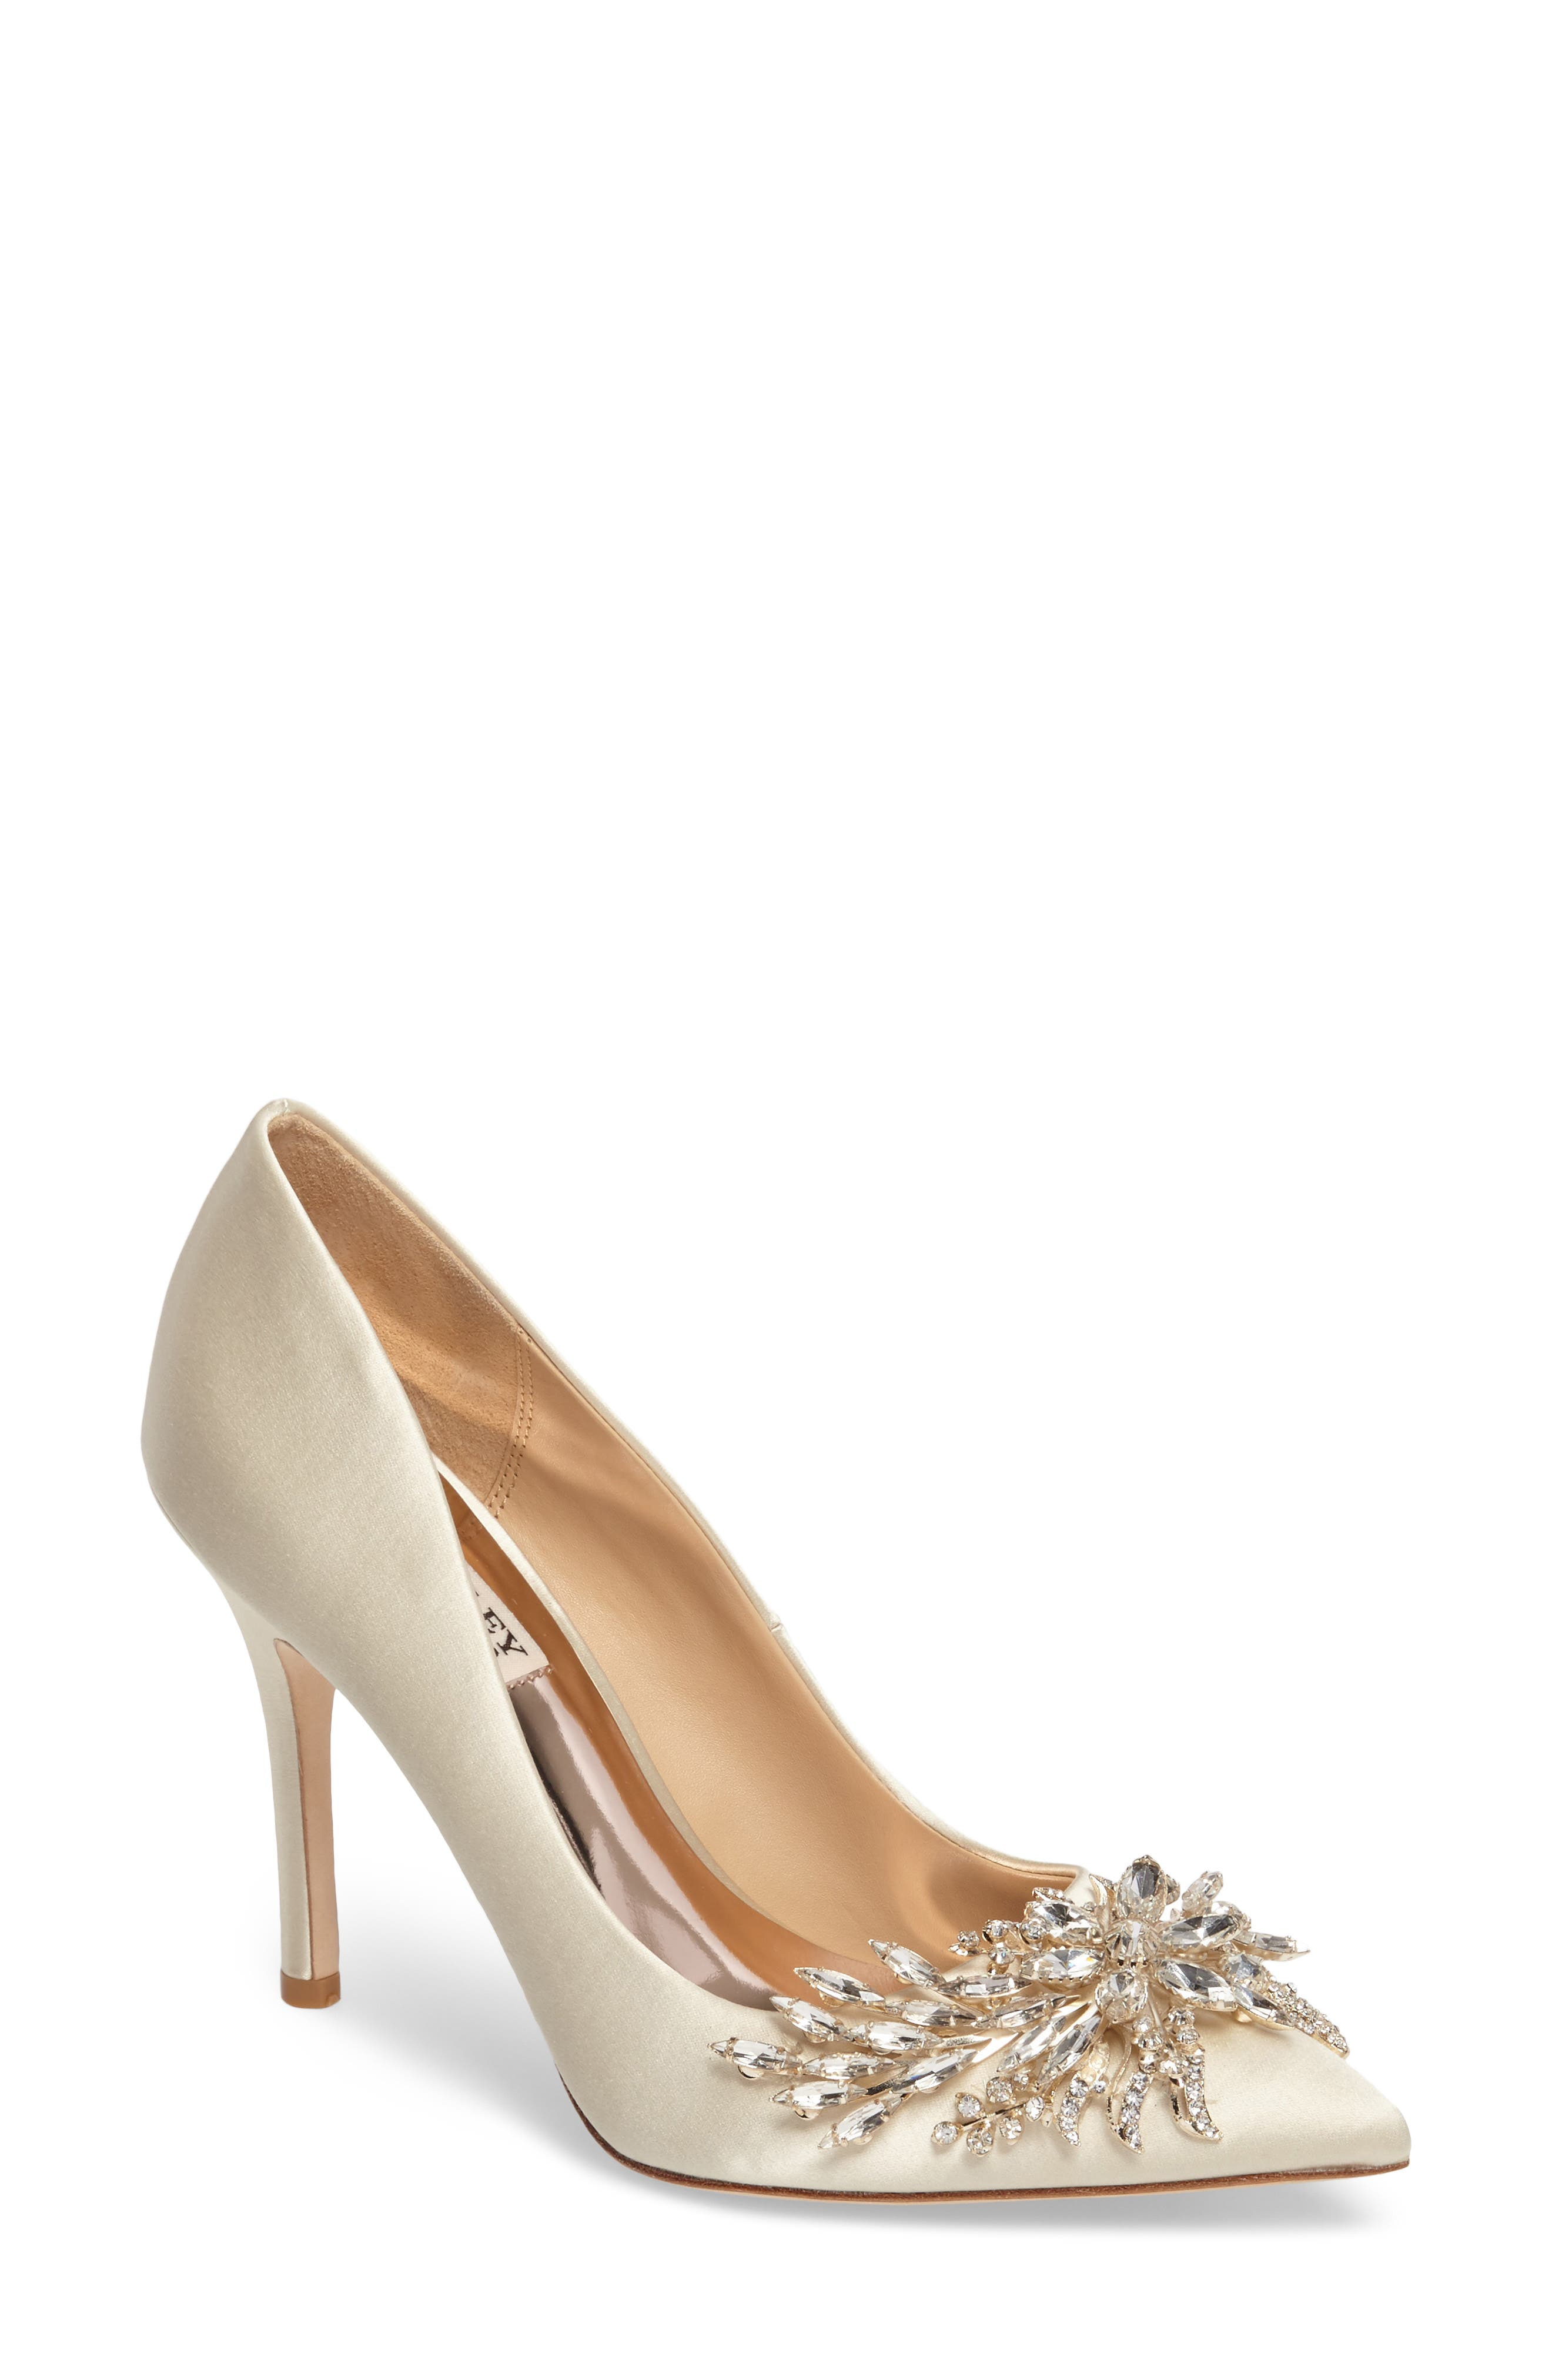 Alternate Image 1 Selected - Badgley Mischka Marcela Pointy Toe Pump (Women)